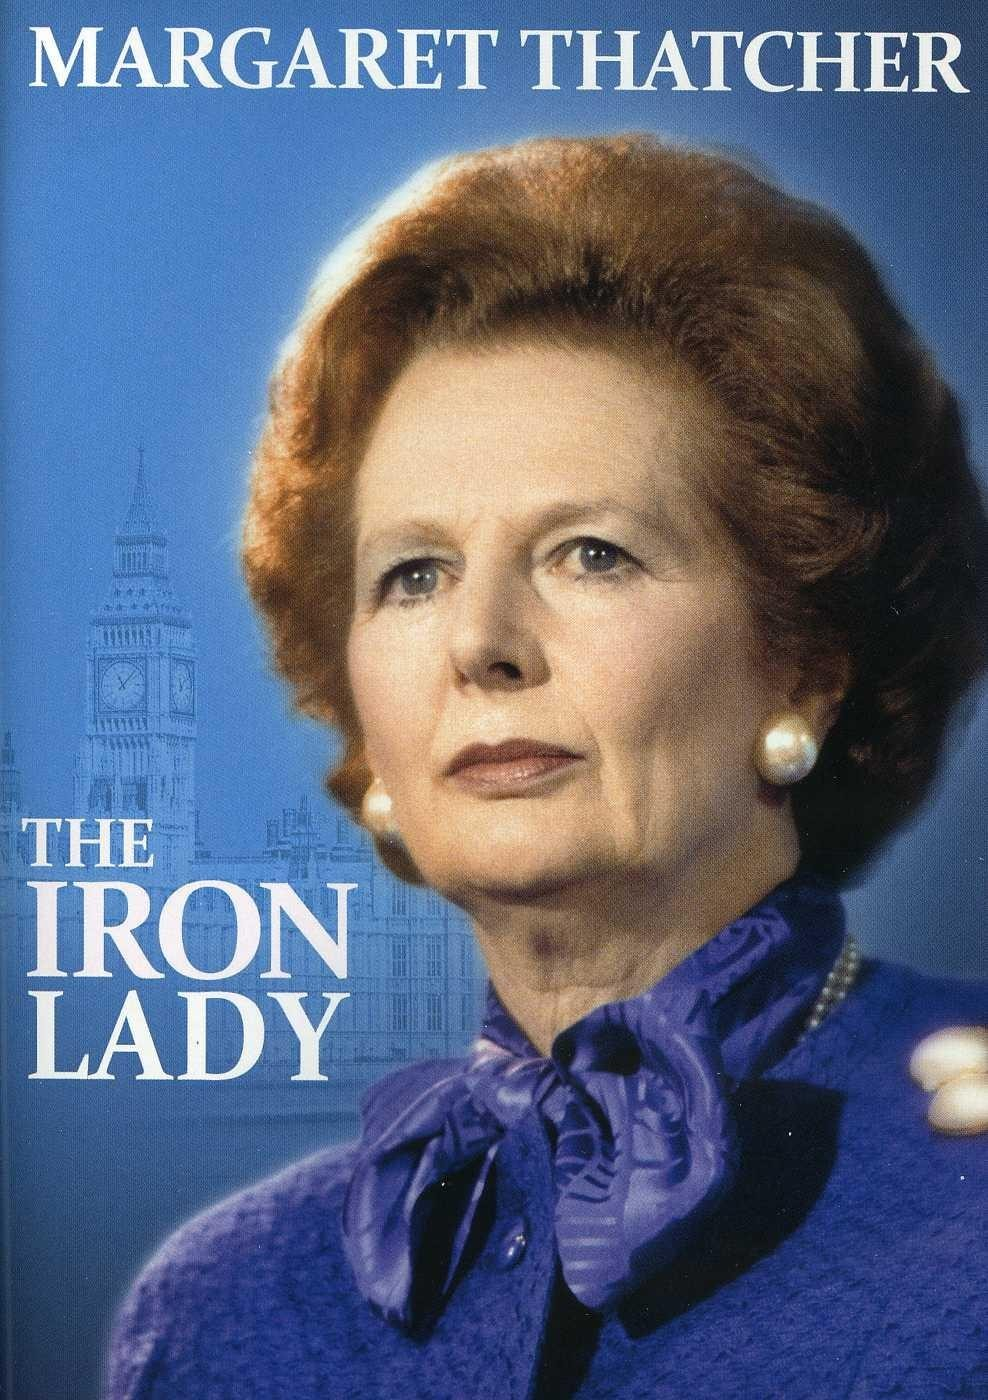 the changes that margaret thatcher brought on great england 10 downing, margaret thatcher was in her element, remaking great britain from  top to bottom  uniquely at that time in british politics, margaret thatcher had  won three  her victory was so great that it changed her political opponents—the  labour  she said that taxes were too high and brought the top rate down from  98.